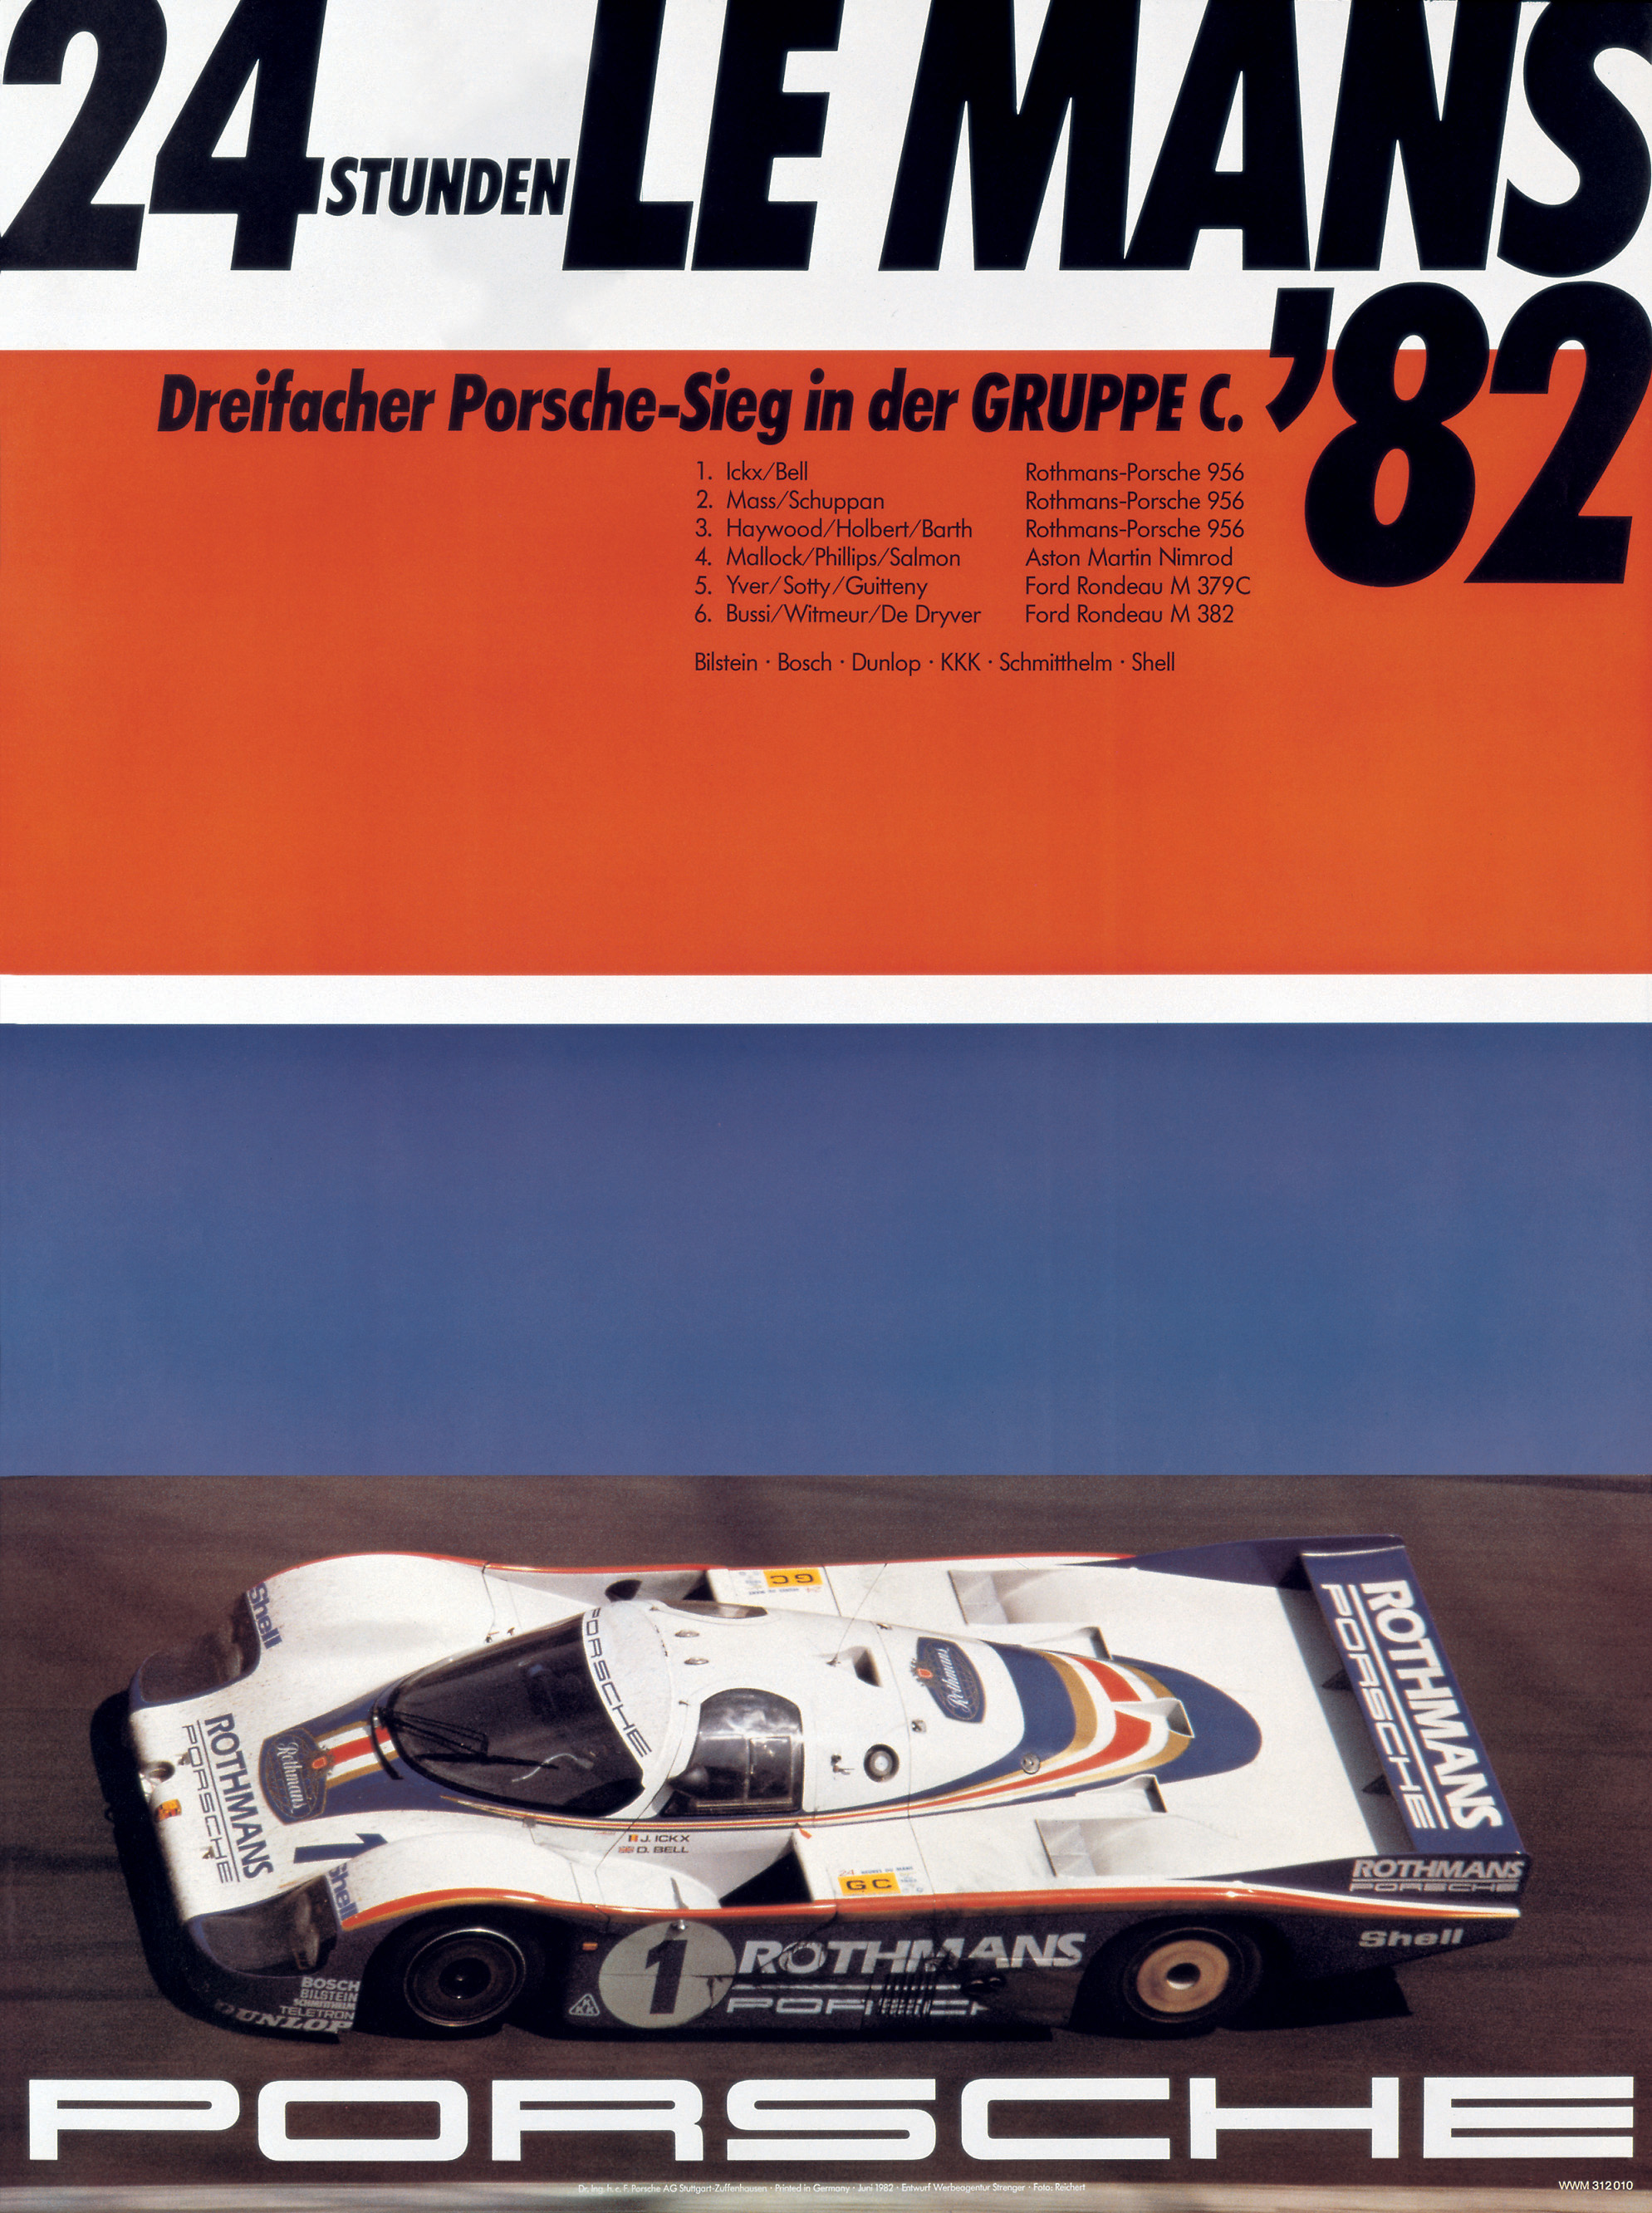 Porsche Racing Posters And Max Huber Modular 4